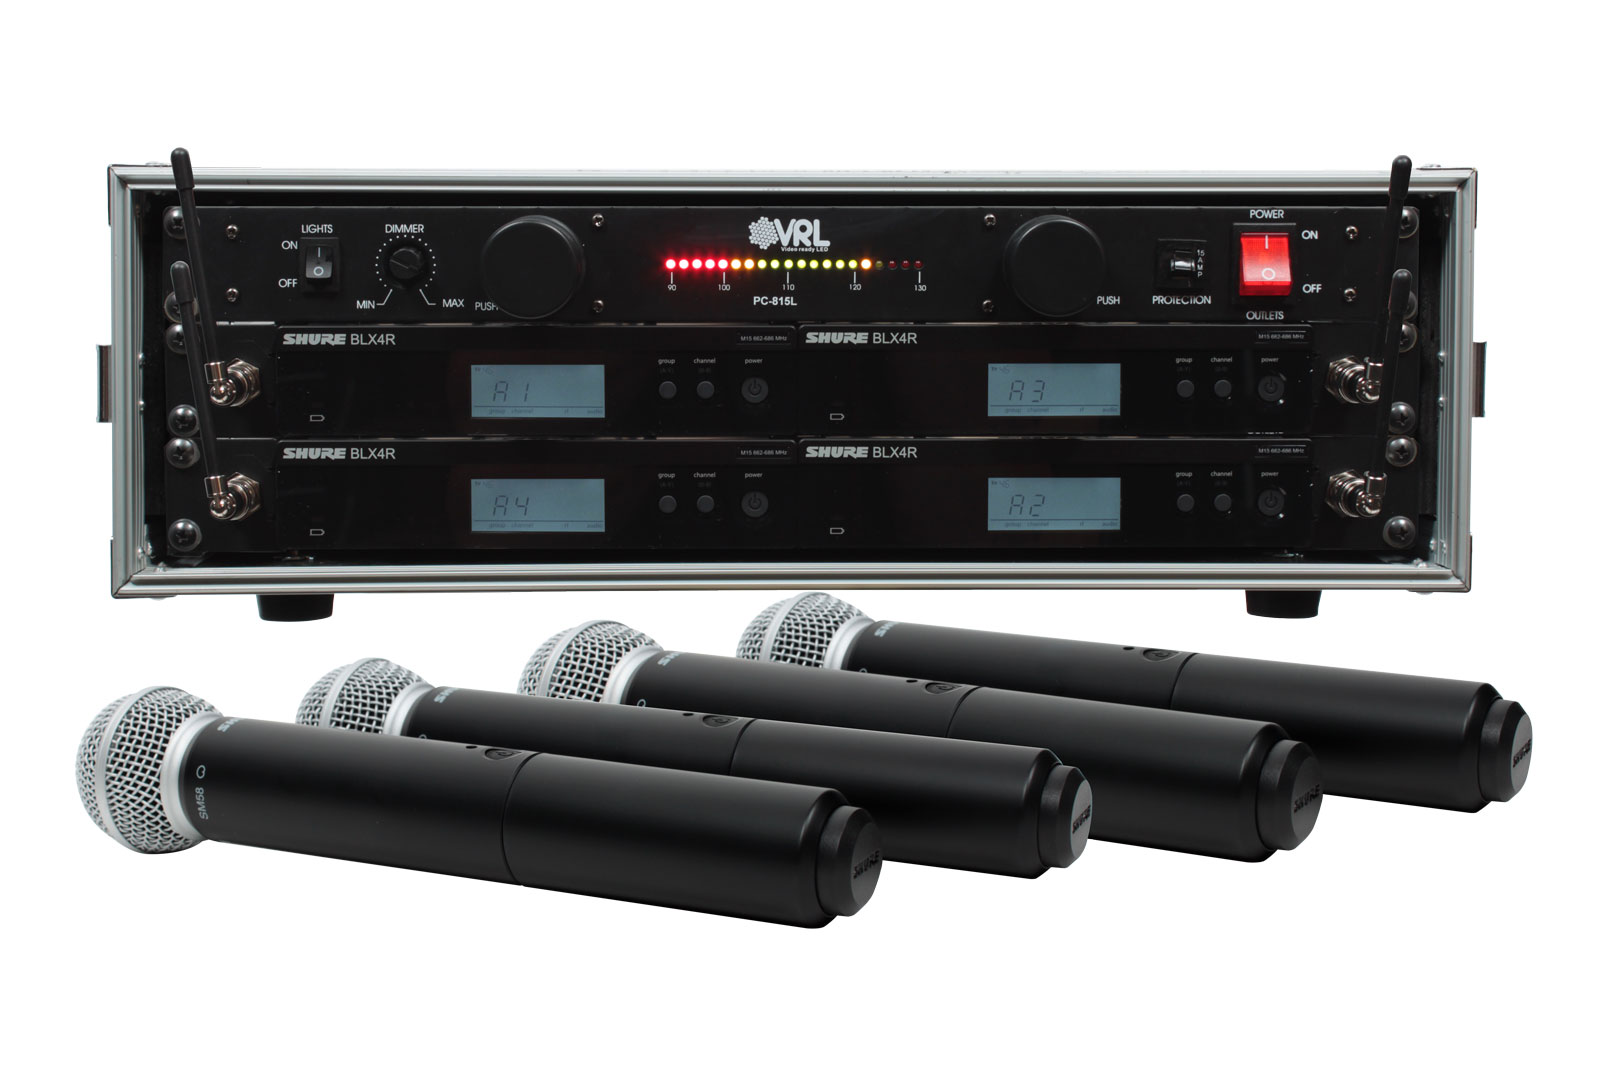 shure blx24r sm58 4 pack wireless handheld mic system with vrl power supply. Black Bedroom Furniture Sets. Home Design Ideas